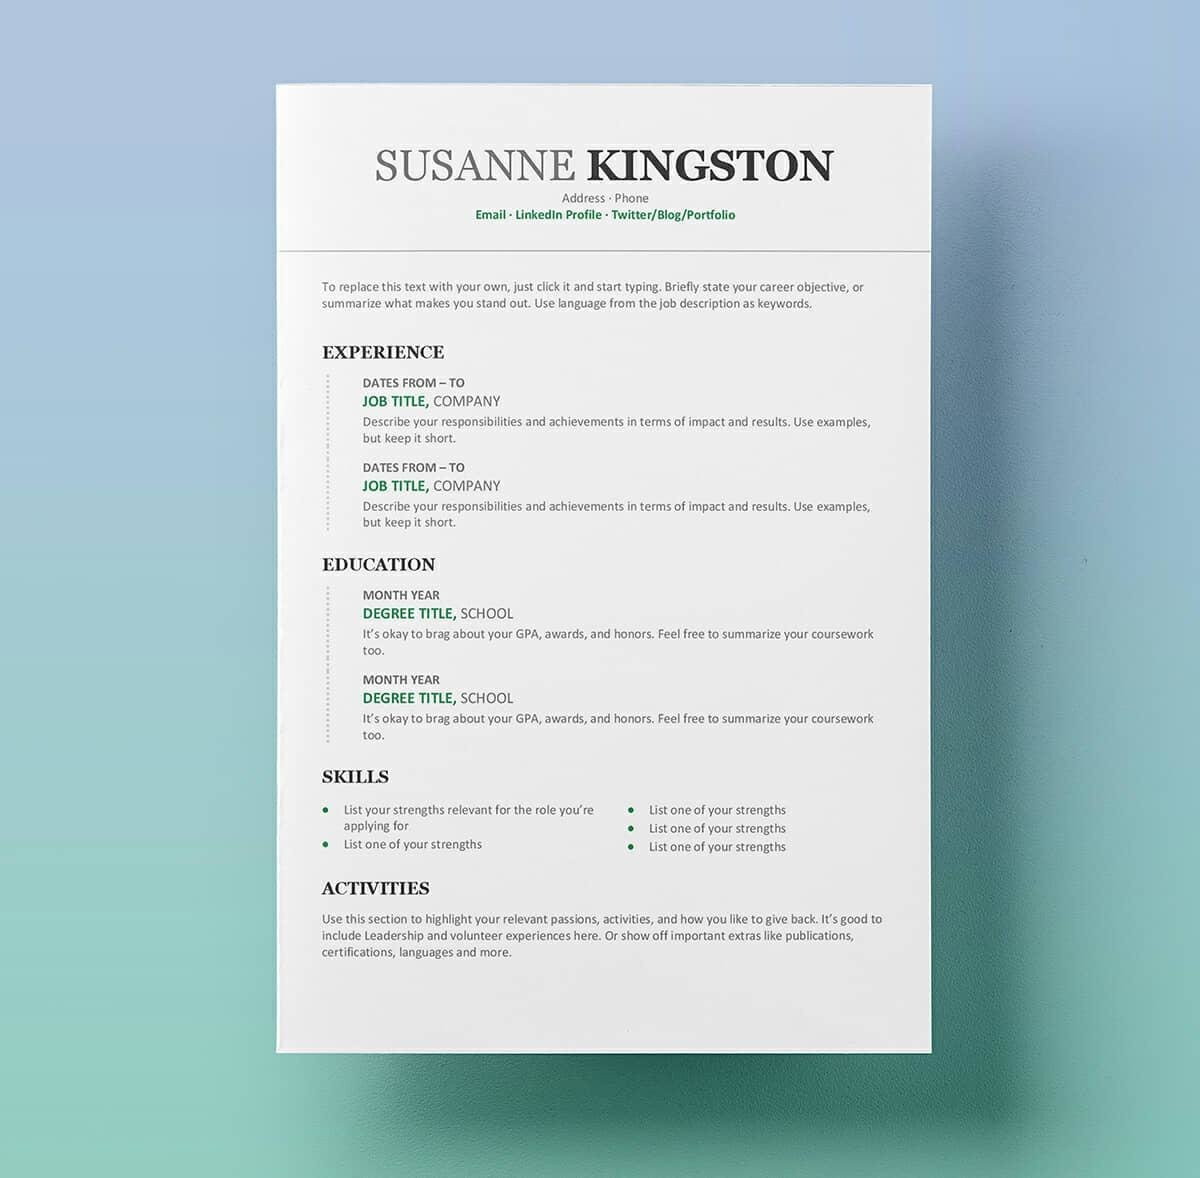 Resume Templates On Word Resume Templates for Word Free 15 Examples for Download